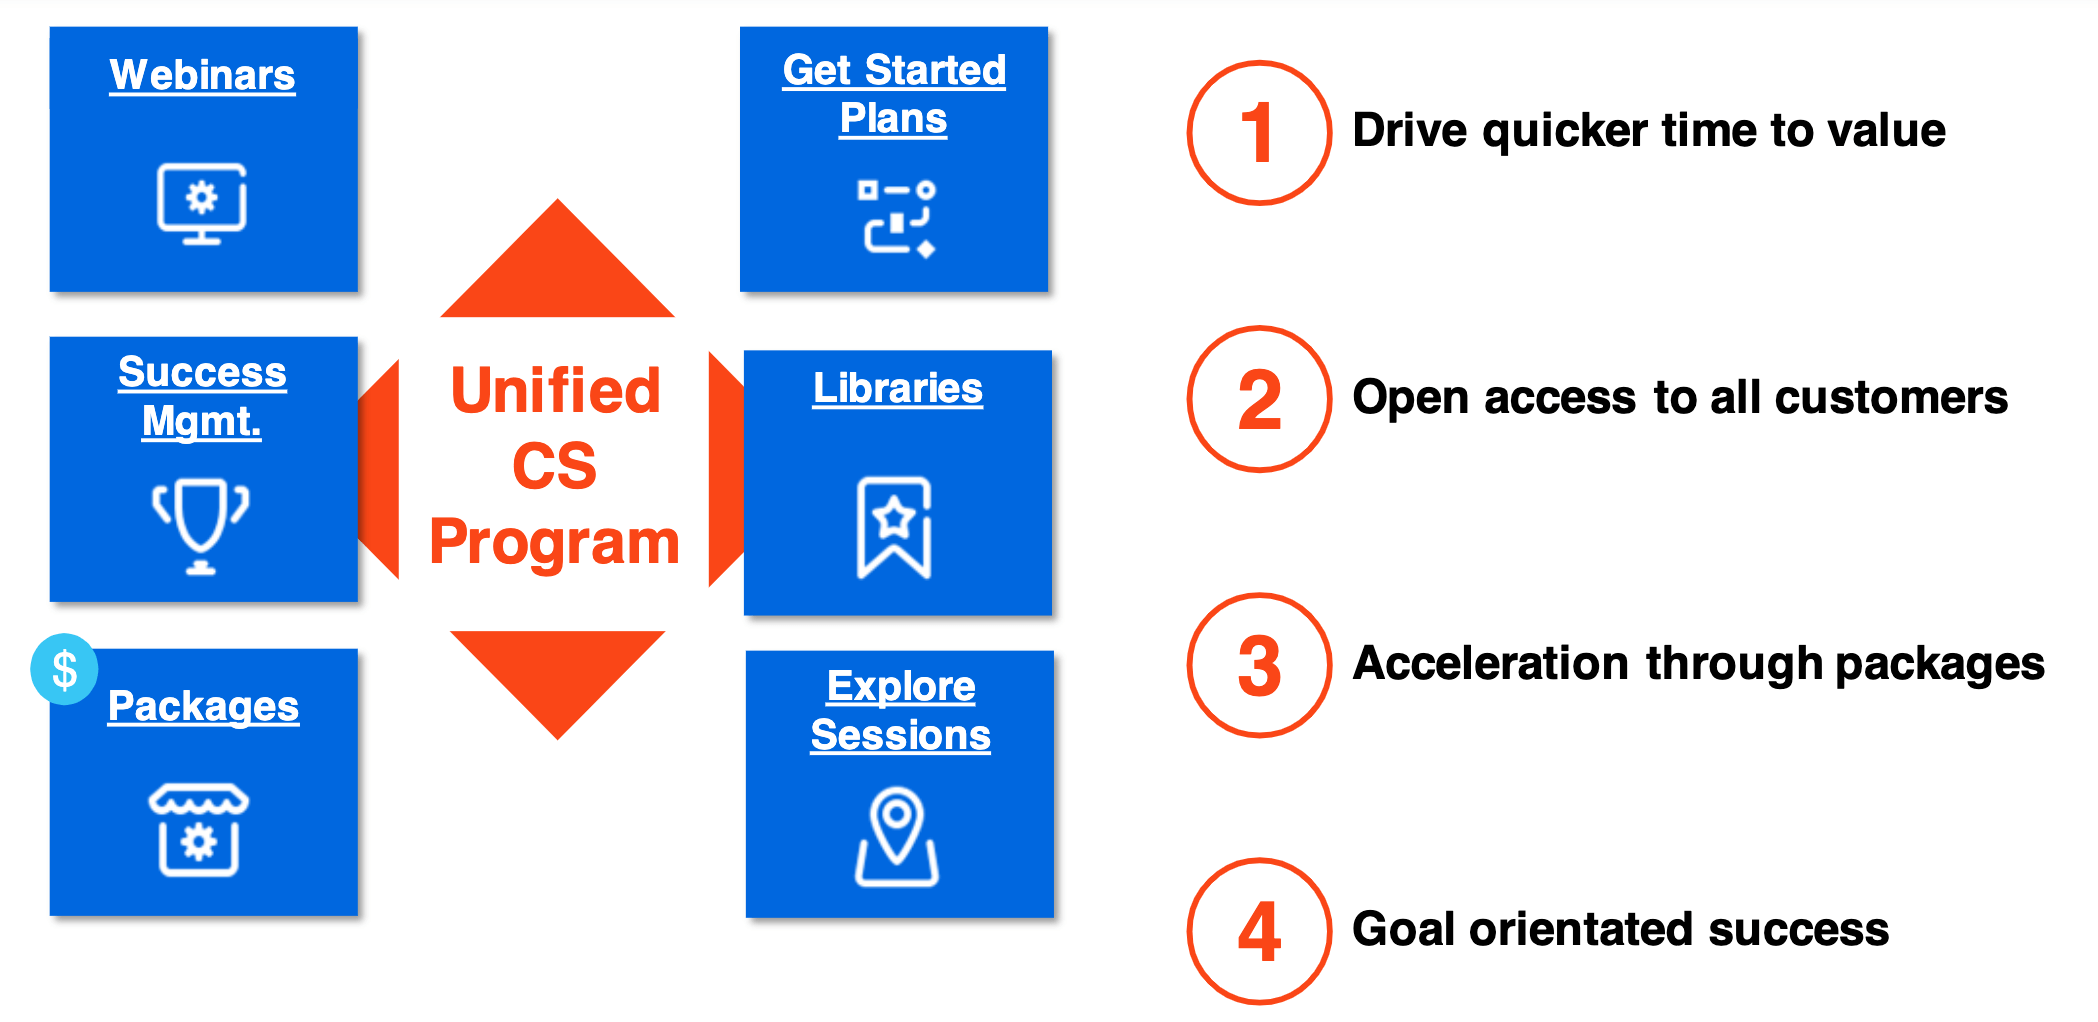 uipath-unified-customer-success-program-new-2020